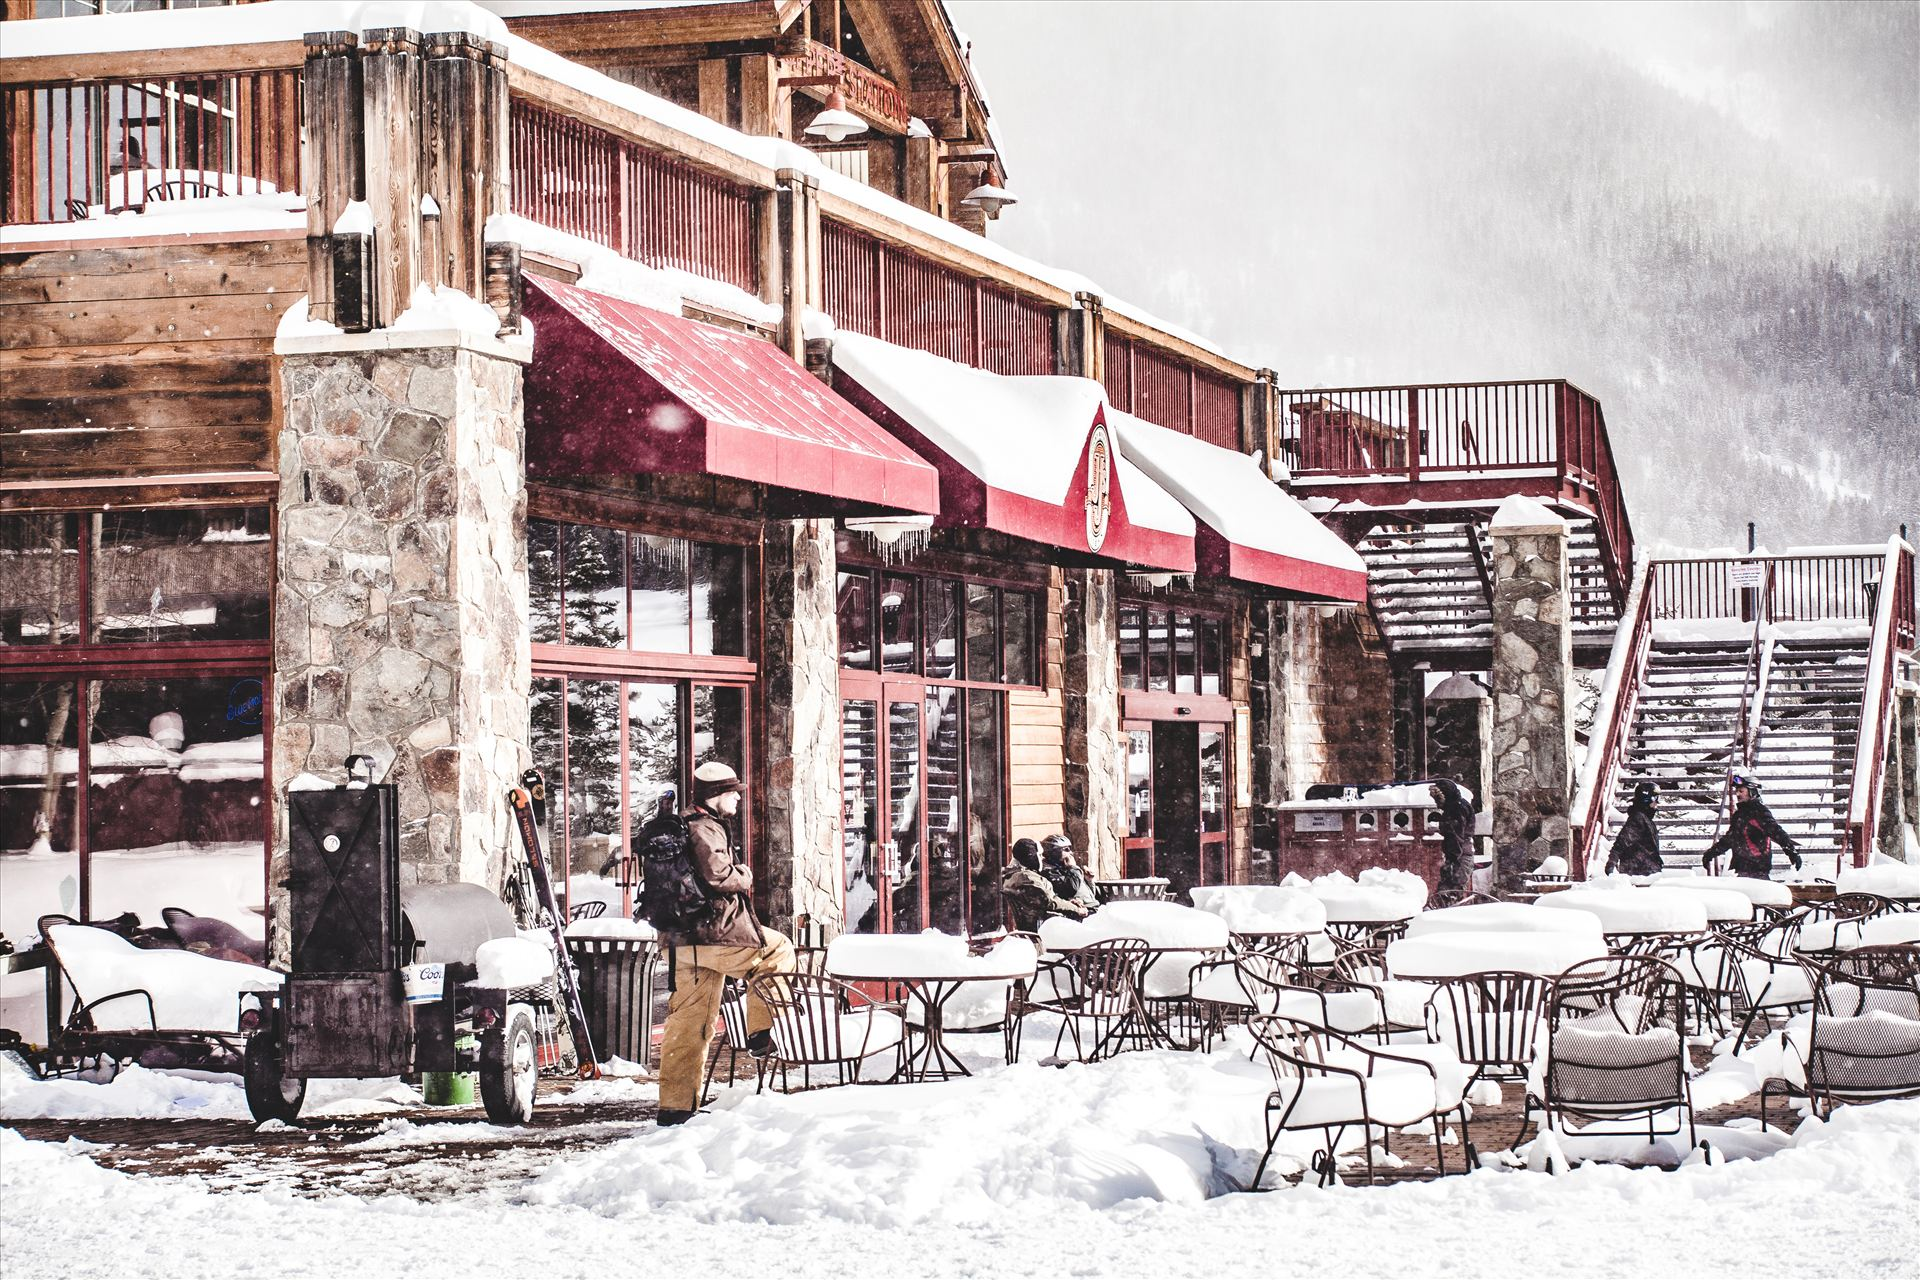 Copper Mountain - Taking a break from shredding at Copper Mountain, Colorado. by Scott Smith Photos